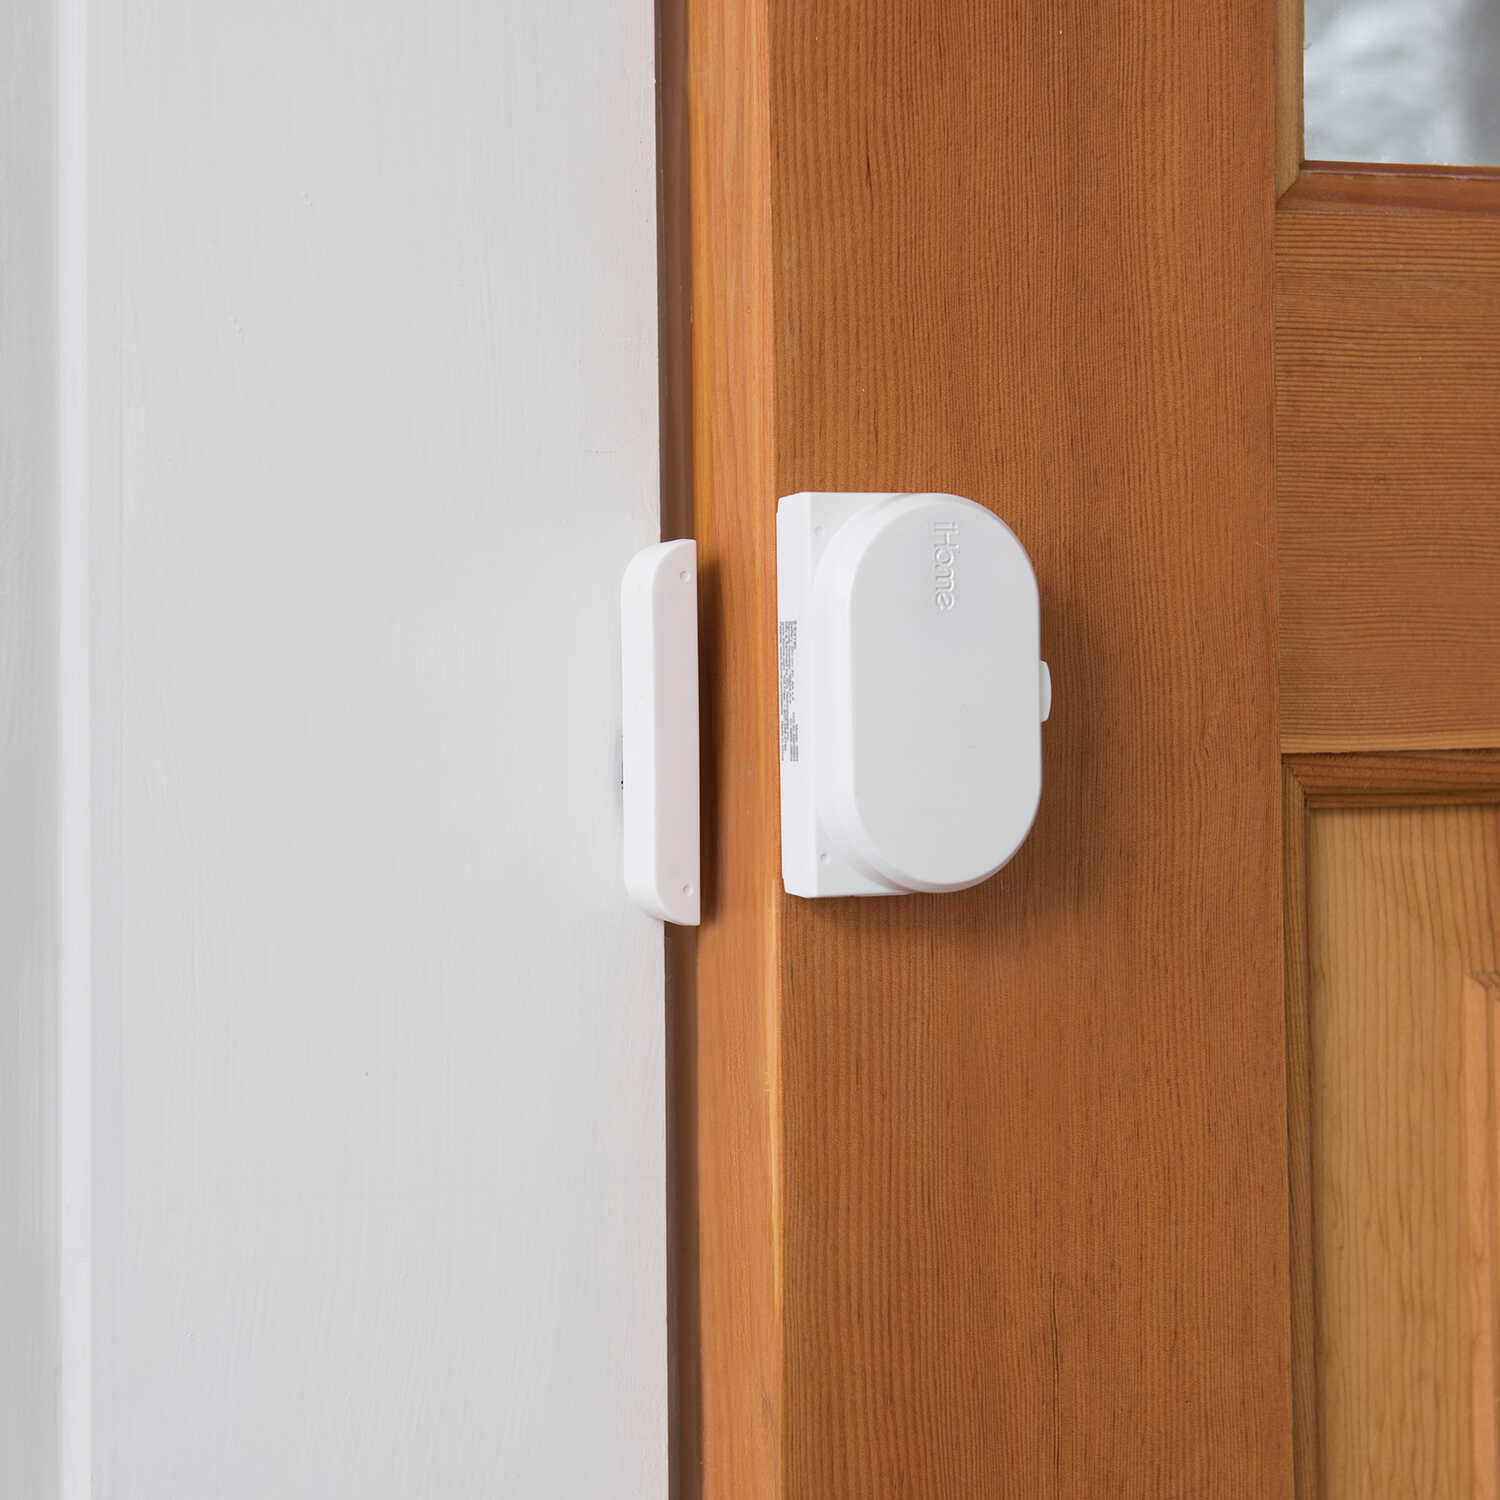 iHome  White  Plastic  Personal Security Alarm